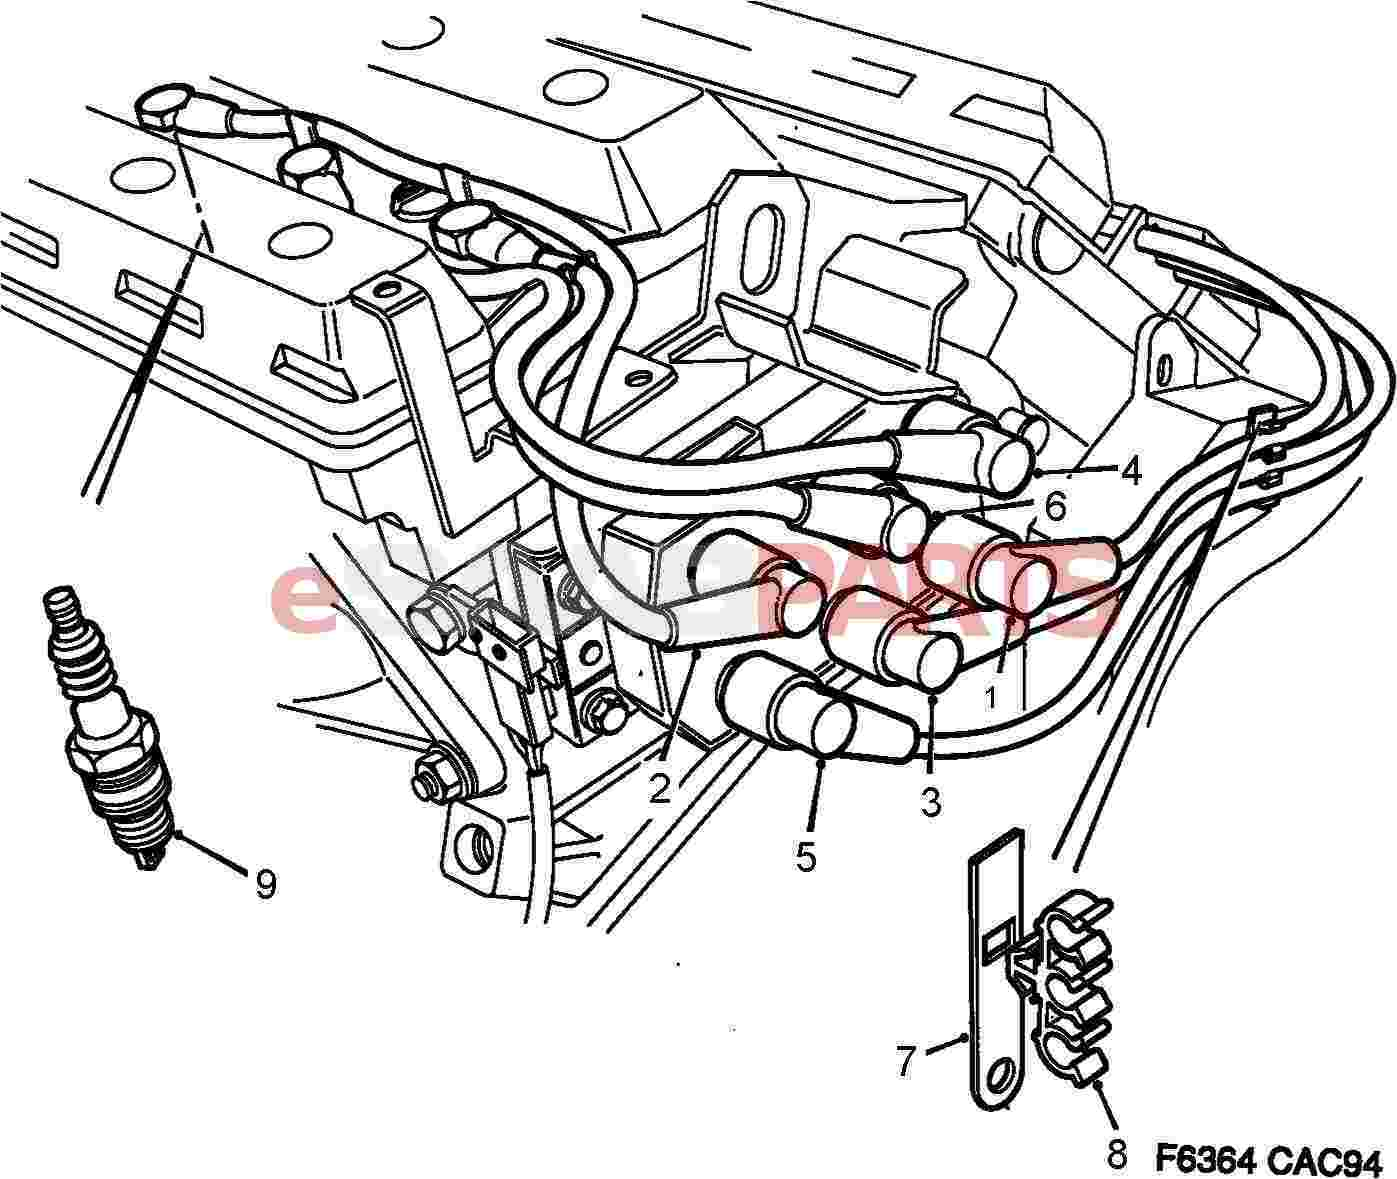 Chevy 6 5 Sel Wiring Harness Chevy Clutch Assembly Wiring